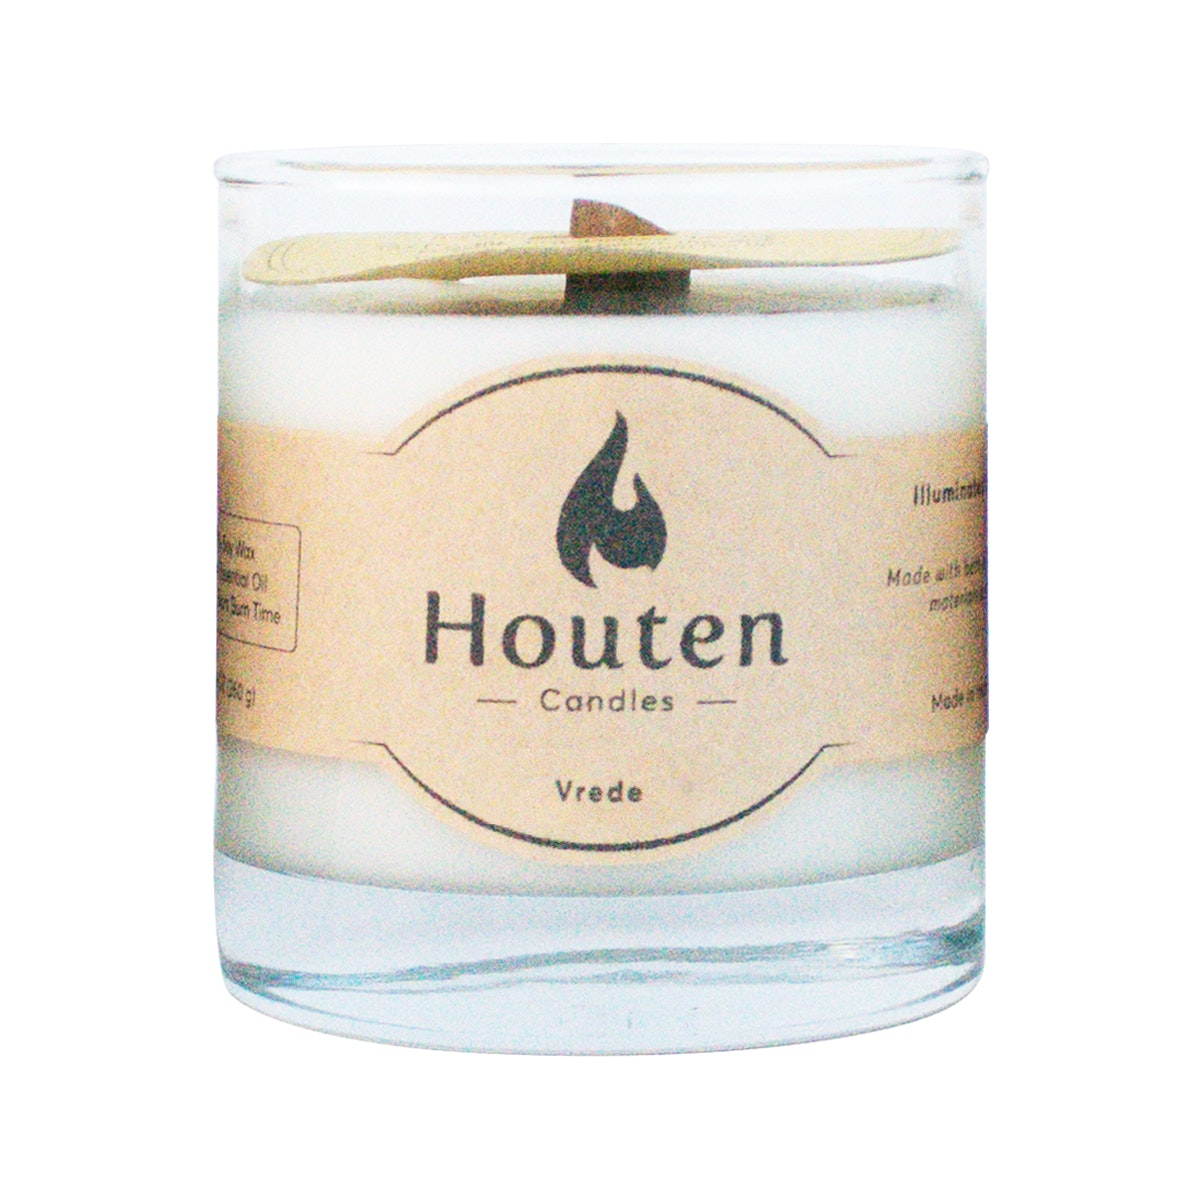 Houten Candles Premium Soy Candles Vrede 250ml